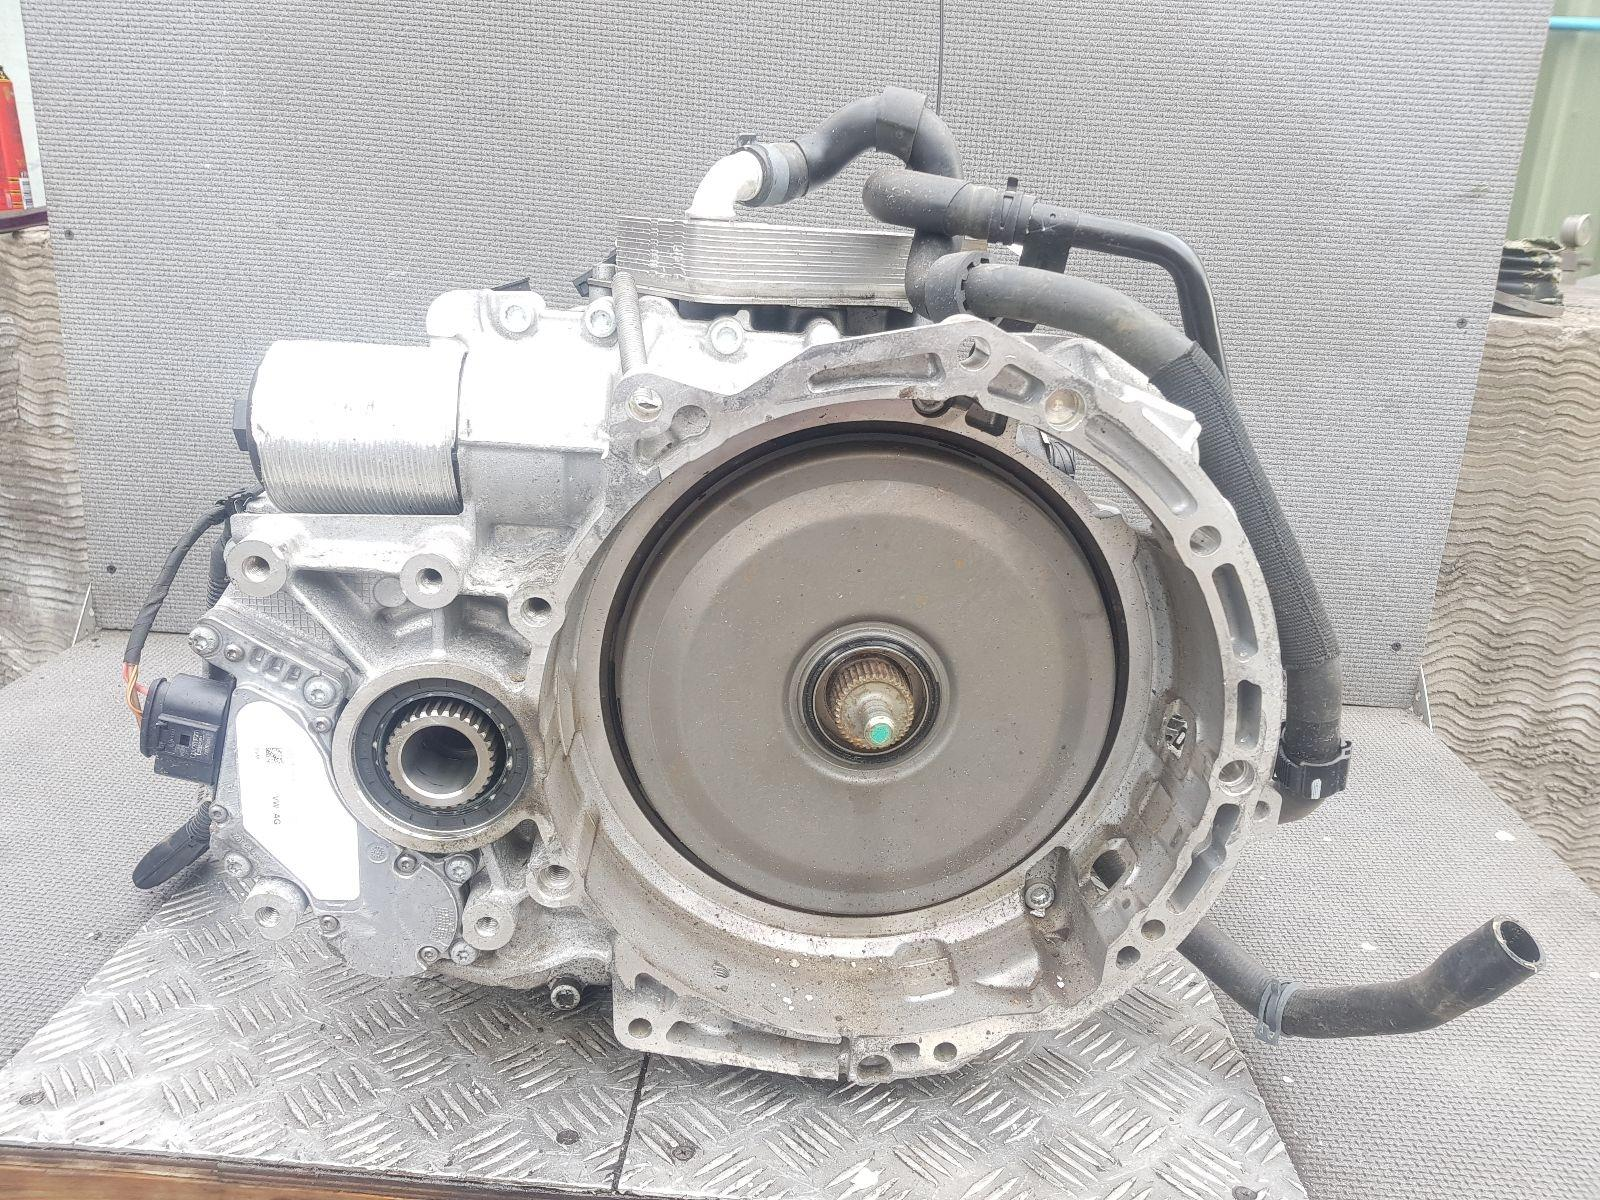 Audi A3 2016 On Transmission Assembly (Petrol / DSG) for sale from